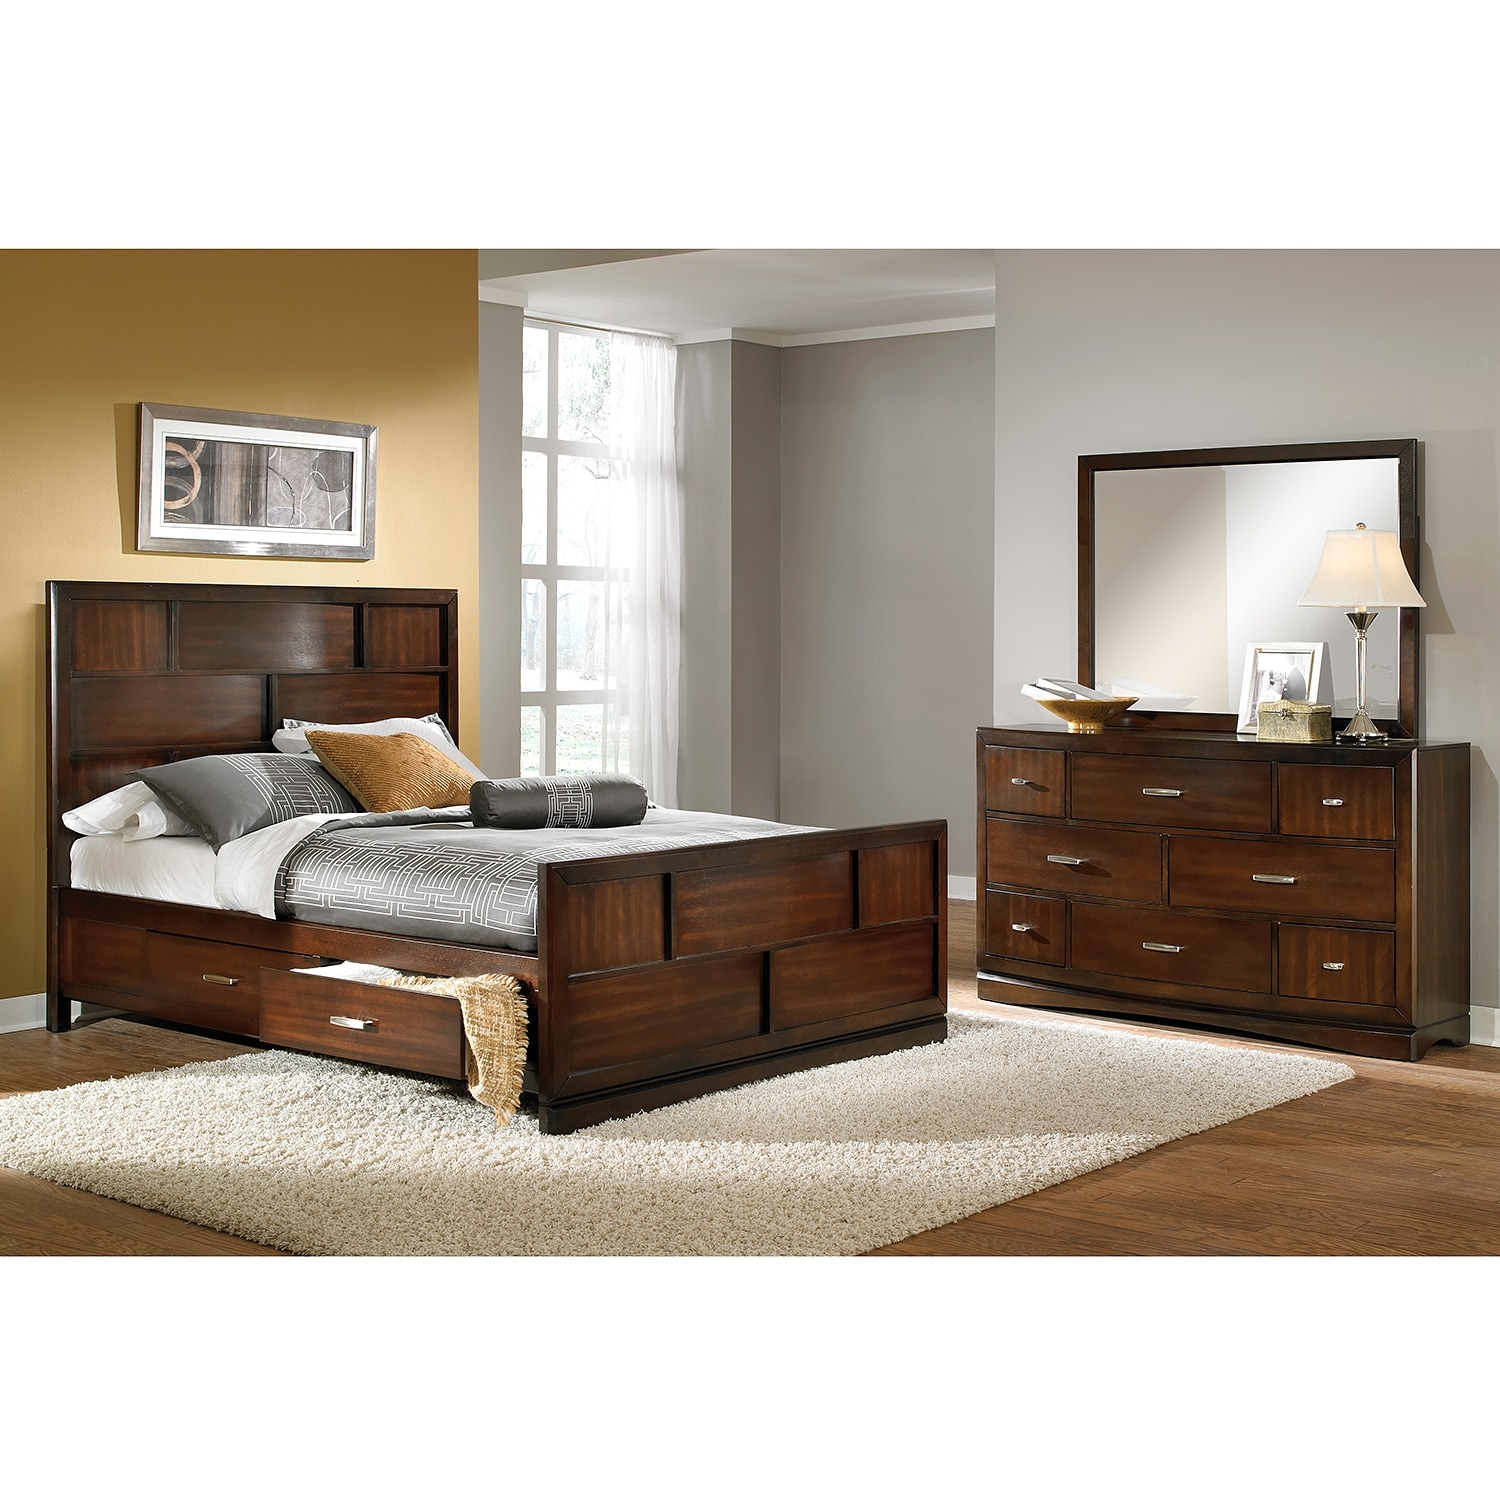 Toronto 5 piece king storage bedroom set pecan for American bedroom furniture designs